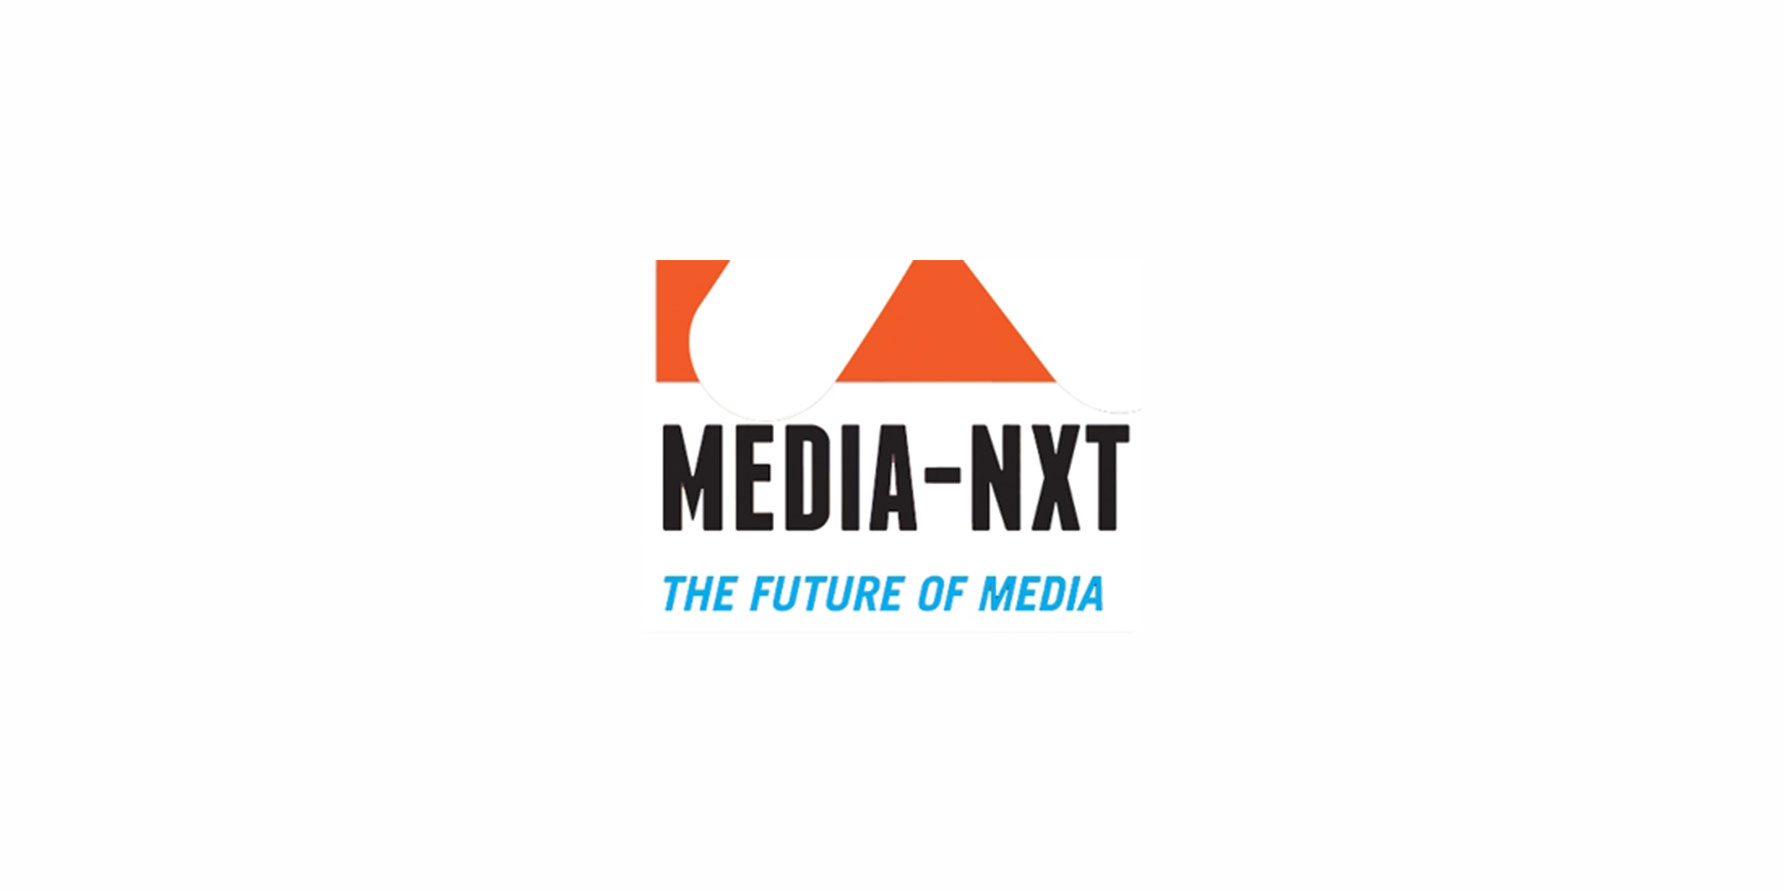 Sensifai is featured in 2018 Media-Nxt Report